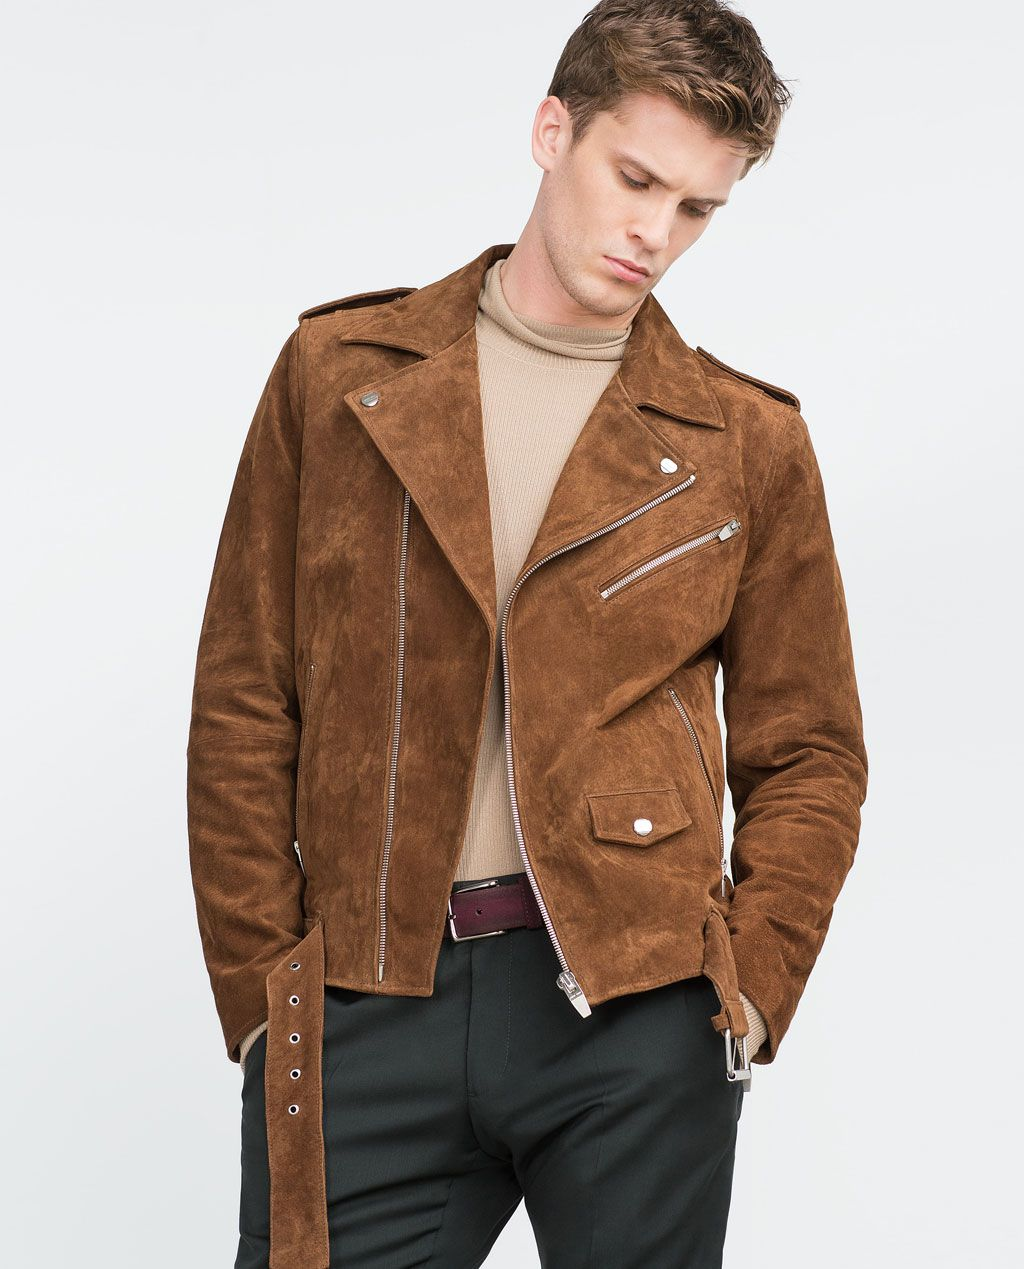 Zara Suede Moto Jacket Mens jackets, Leather jacket